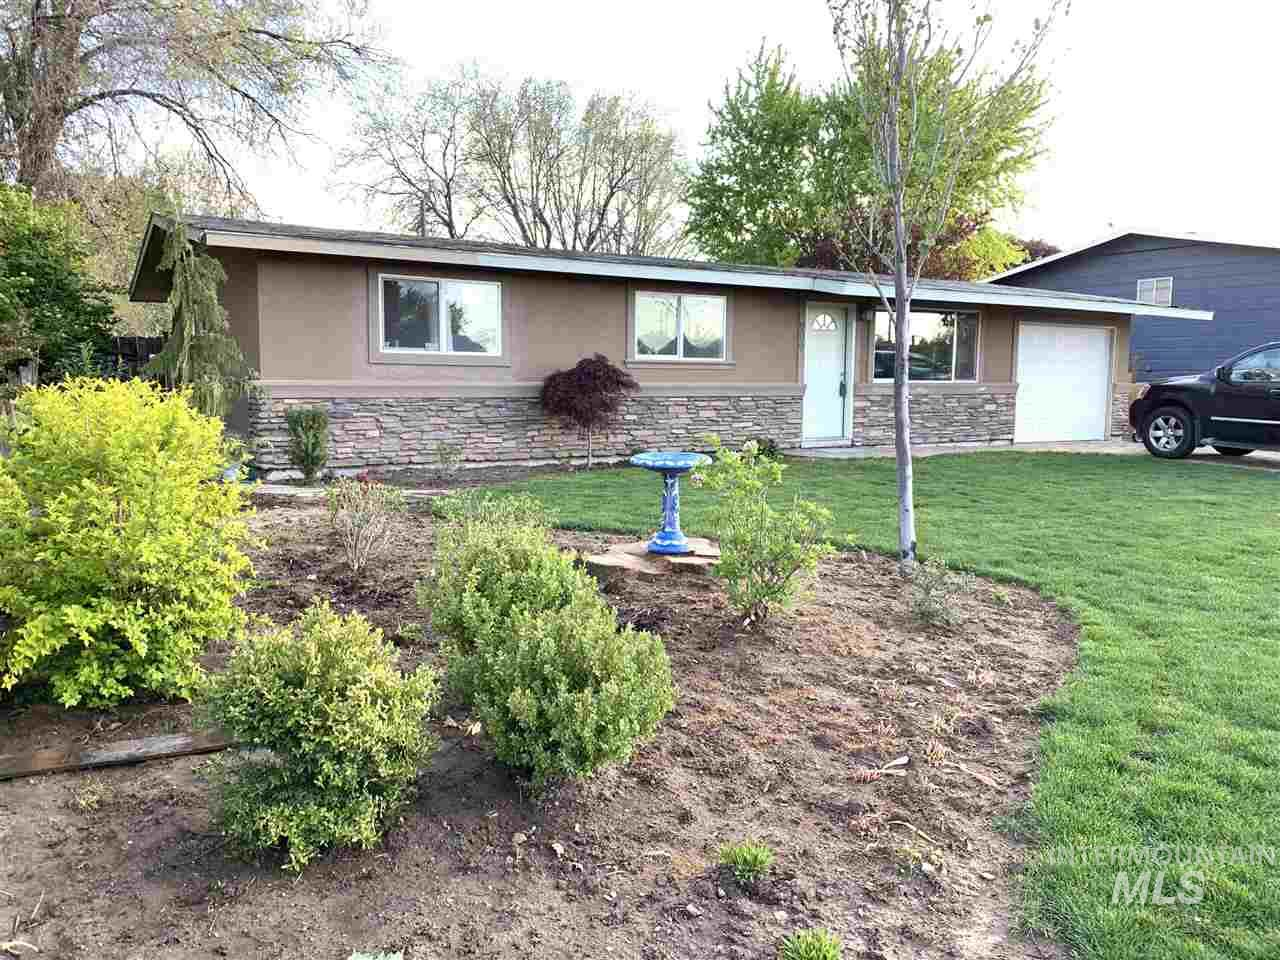 909 W Roberts Ave, Nampa, Idaho 83651, 3 Bedrooms, 2 Bathrooms, Residential For Sale, Price $224,900, 98726137